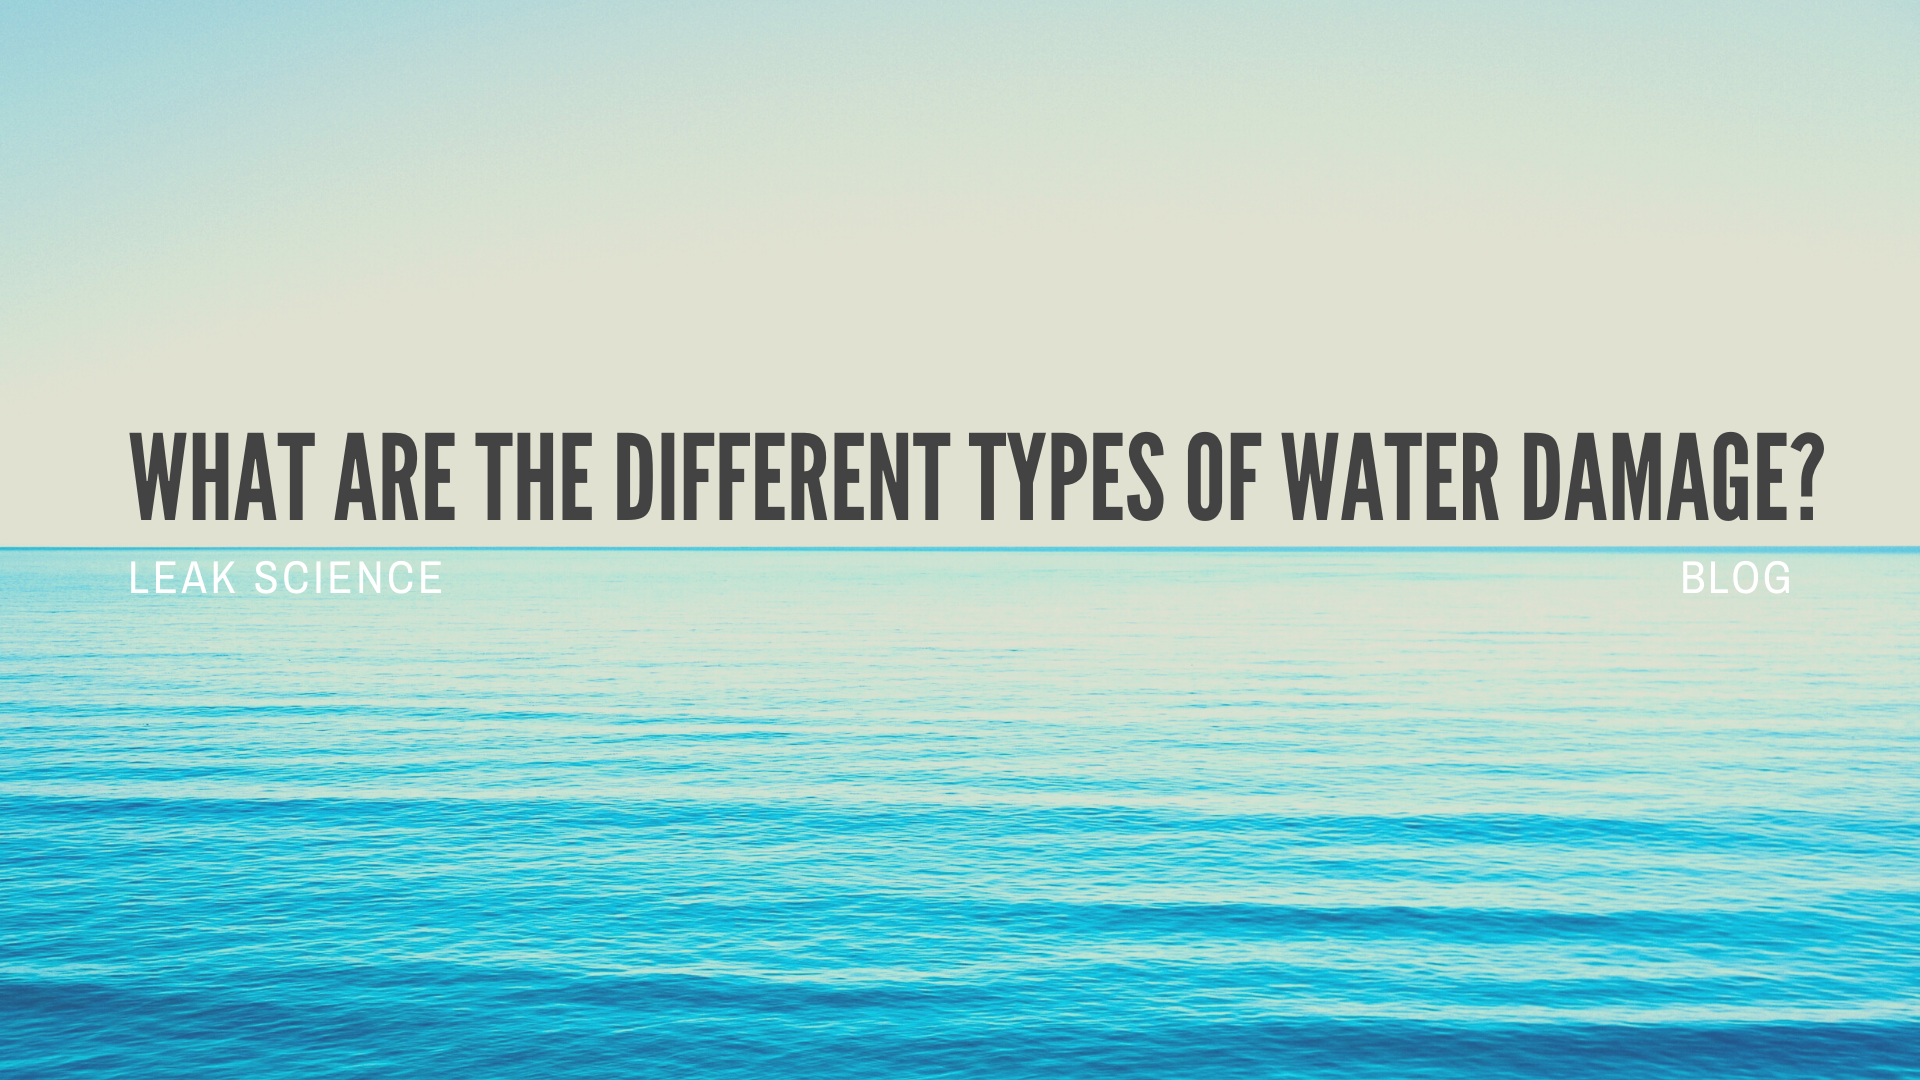 WHAT ARE THE DIFFERENT TYPES OF WATER DAMAGE